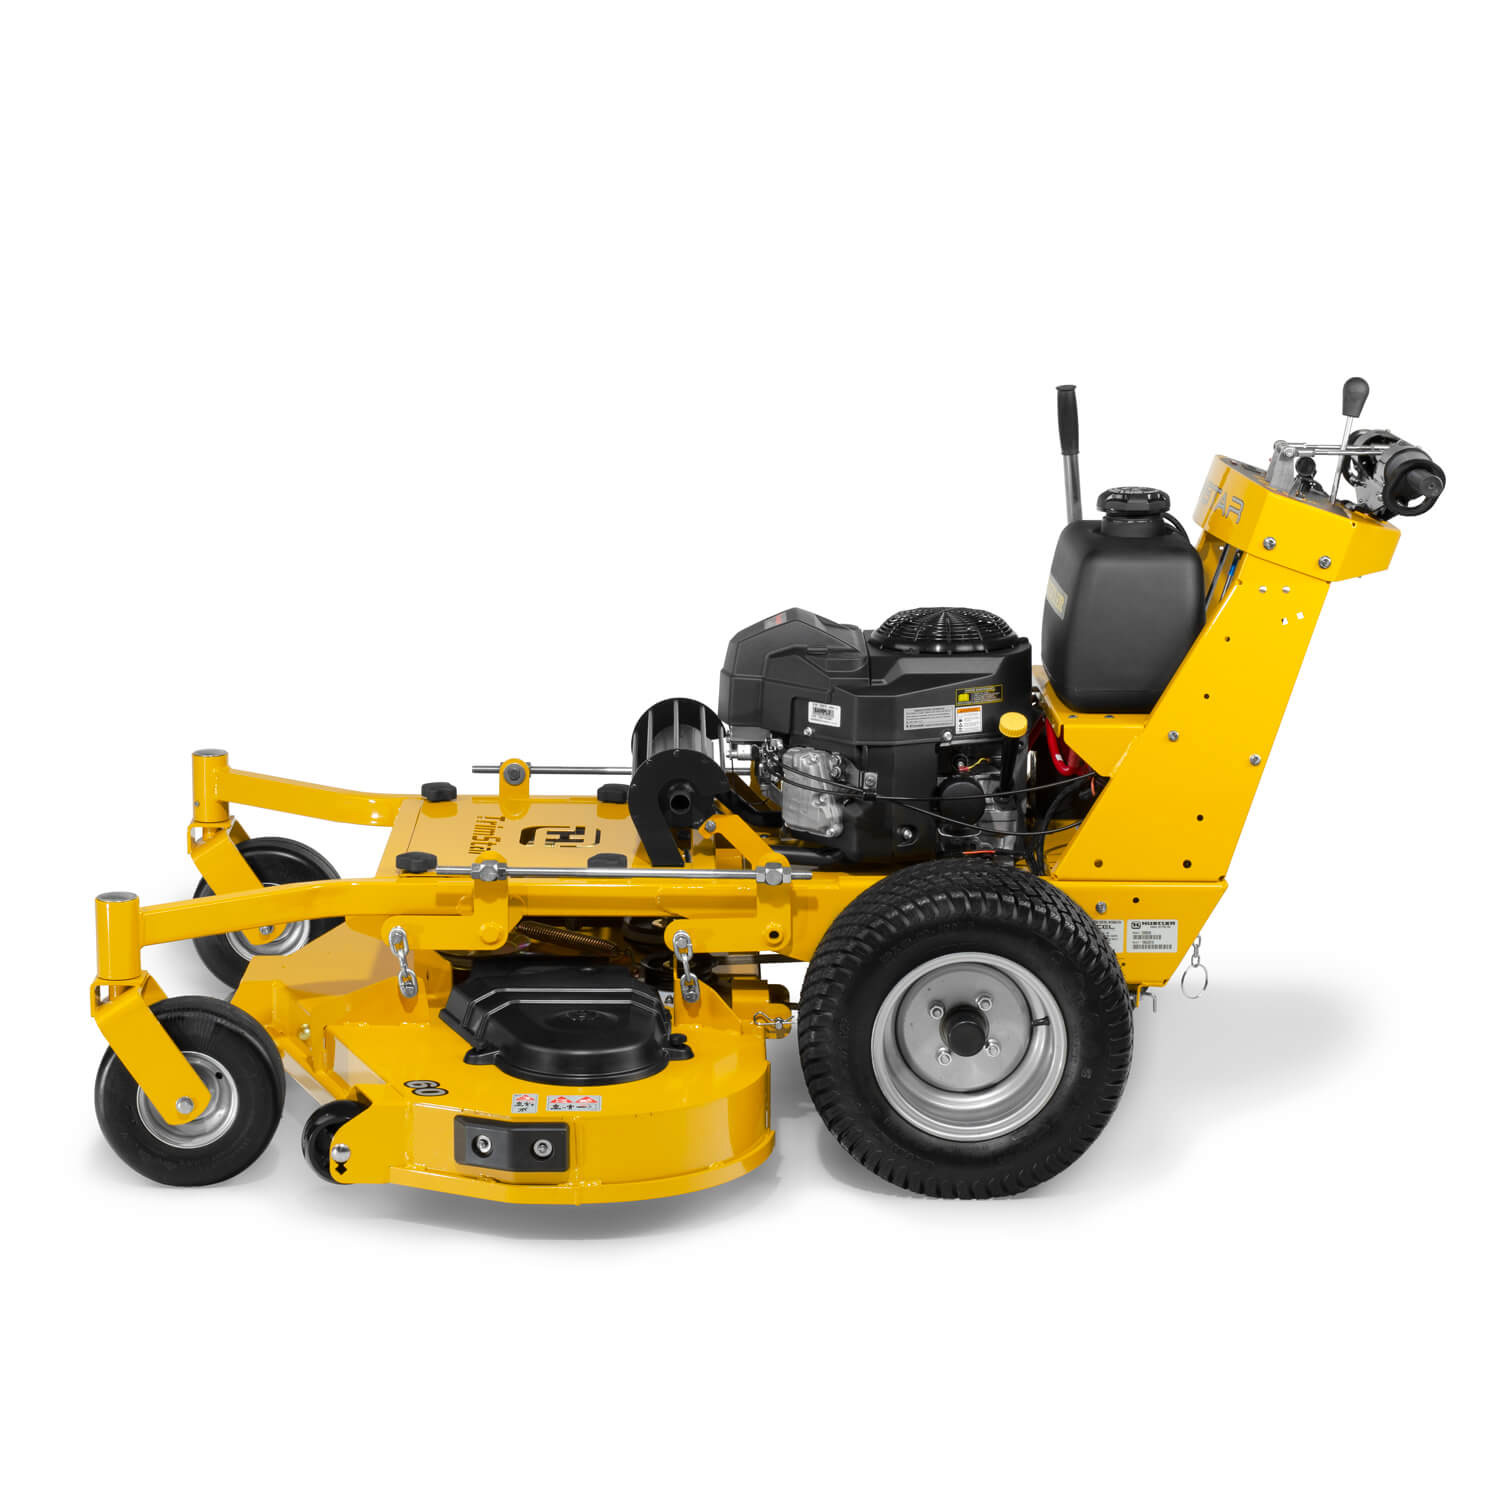 Image of the profile of a yellow walk-behind mower